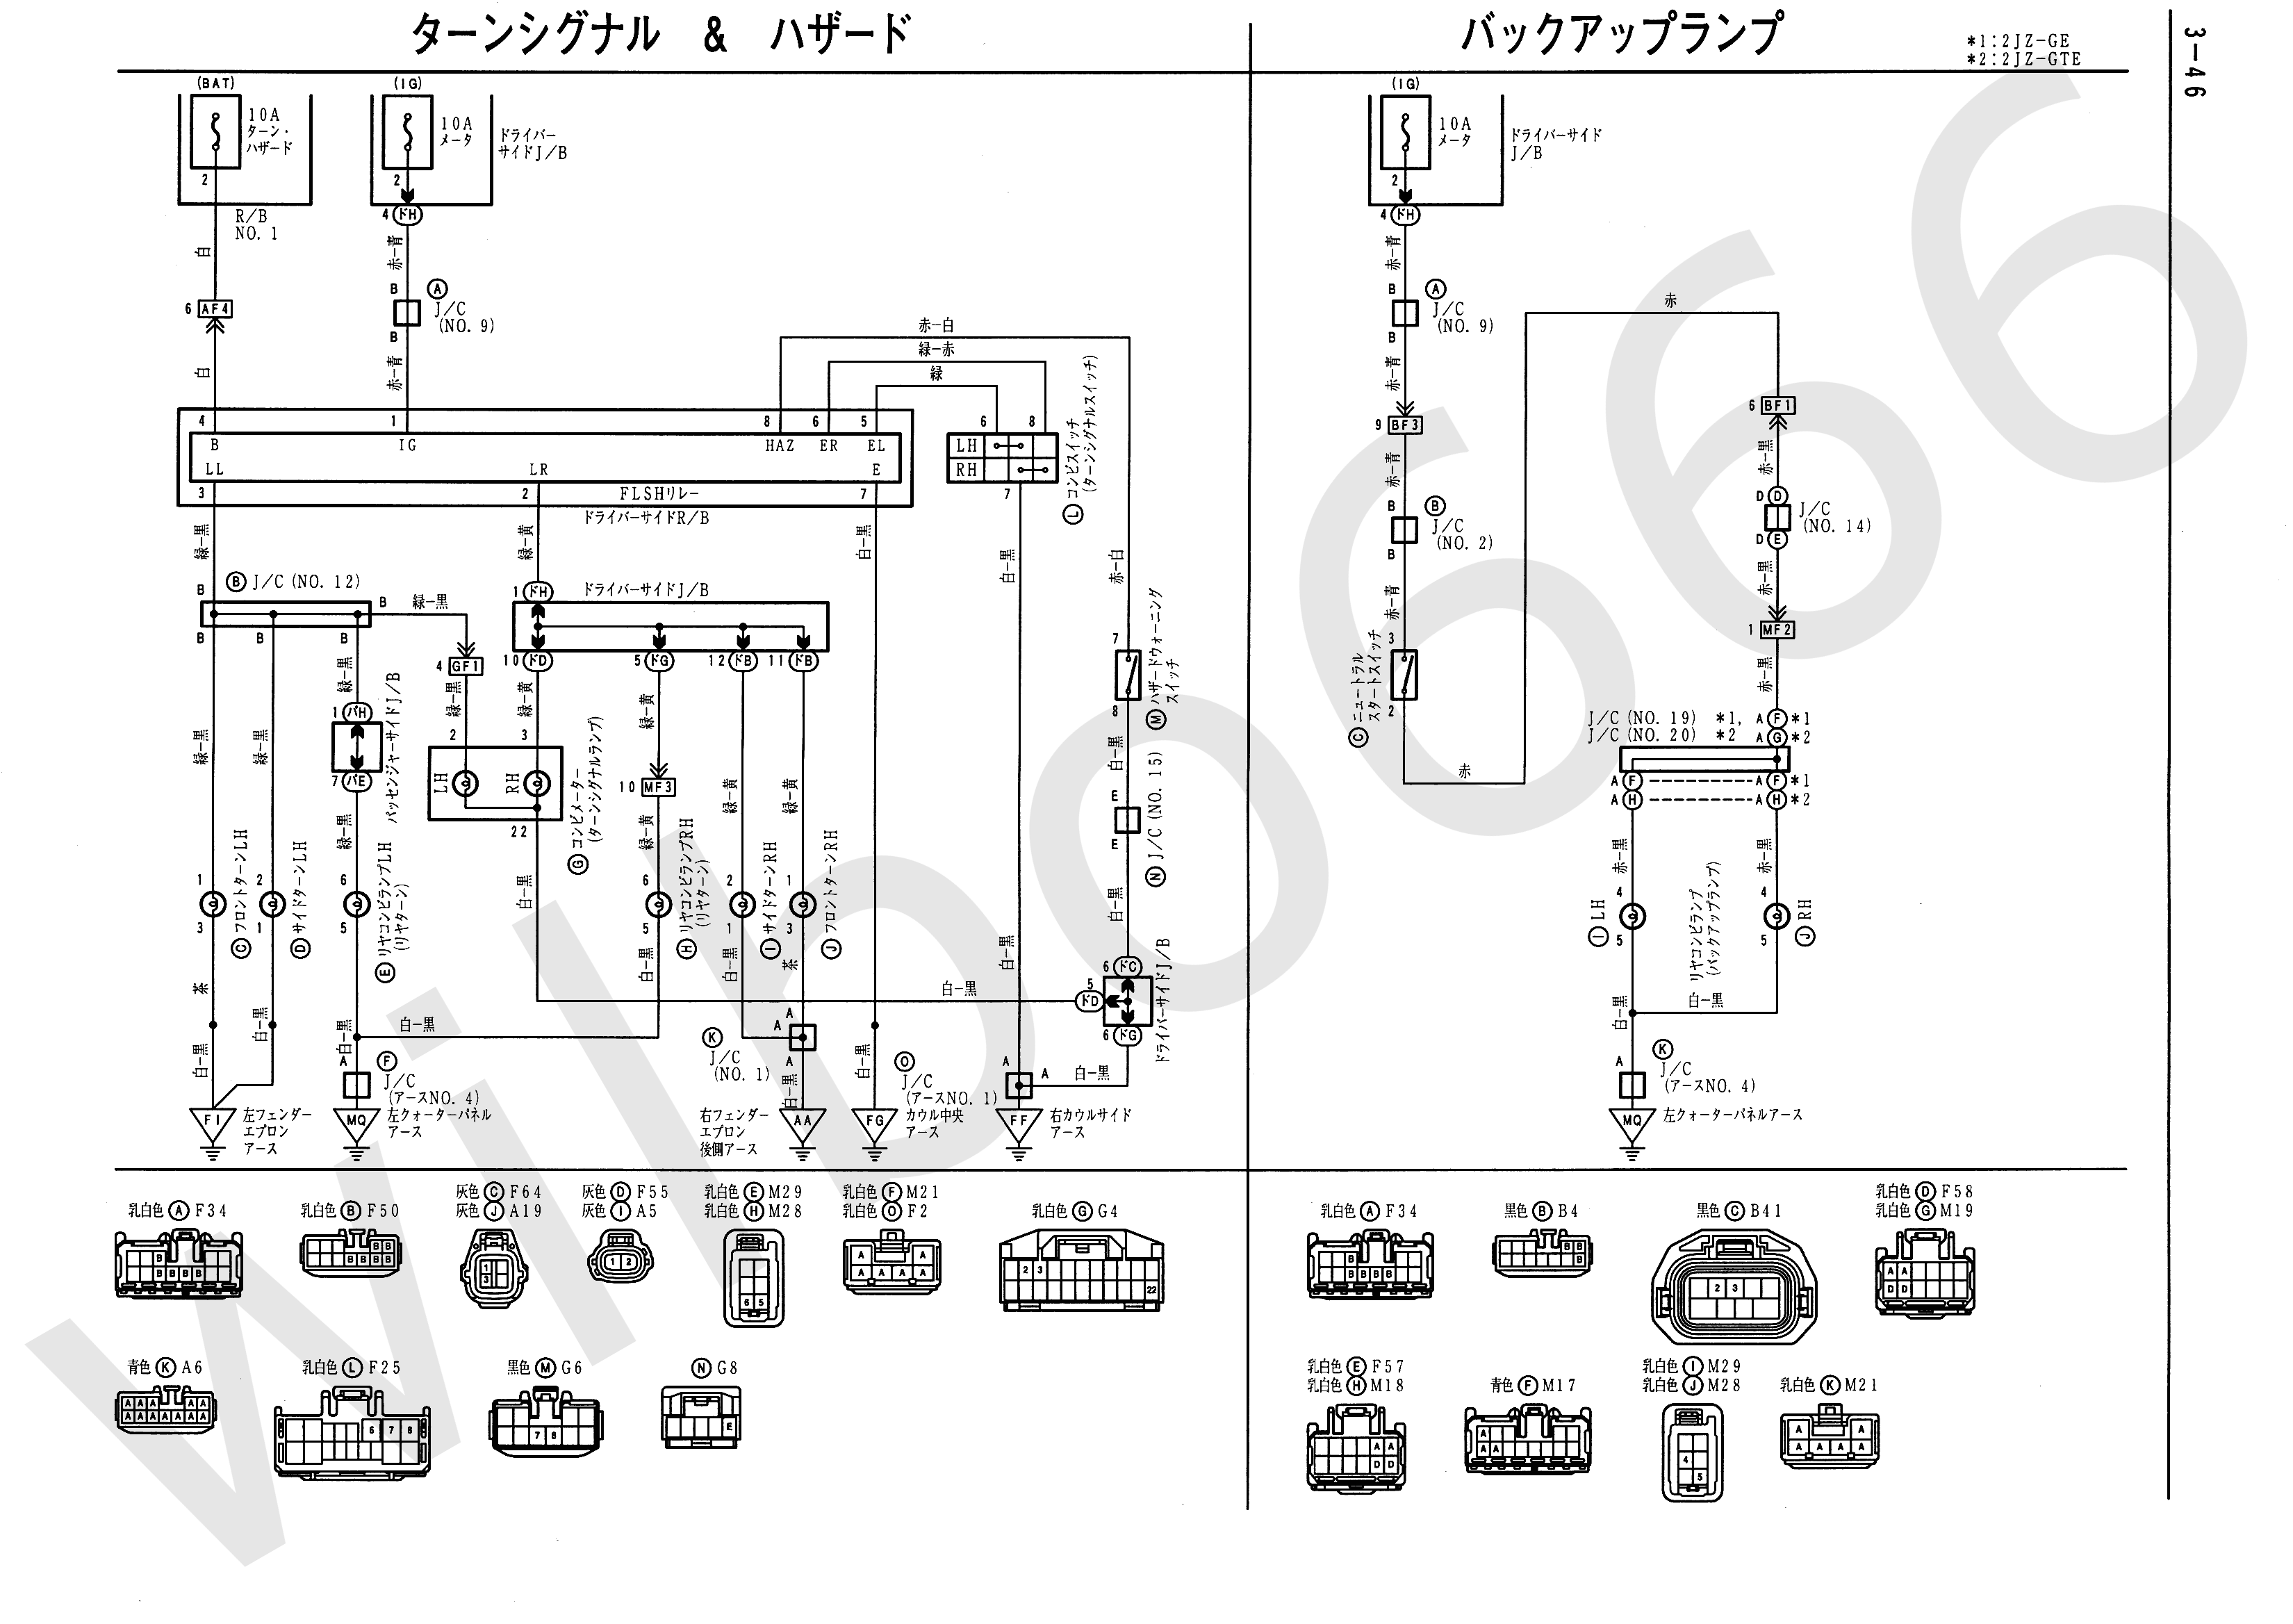 JZS161 Electrical Wiring Diagram 6748505 3 46 wilbo666 2jz gte vvti jzs161 aristo engine wiring TPS Adapter Wire at eliteediting.co